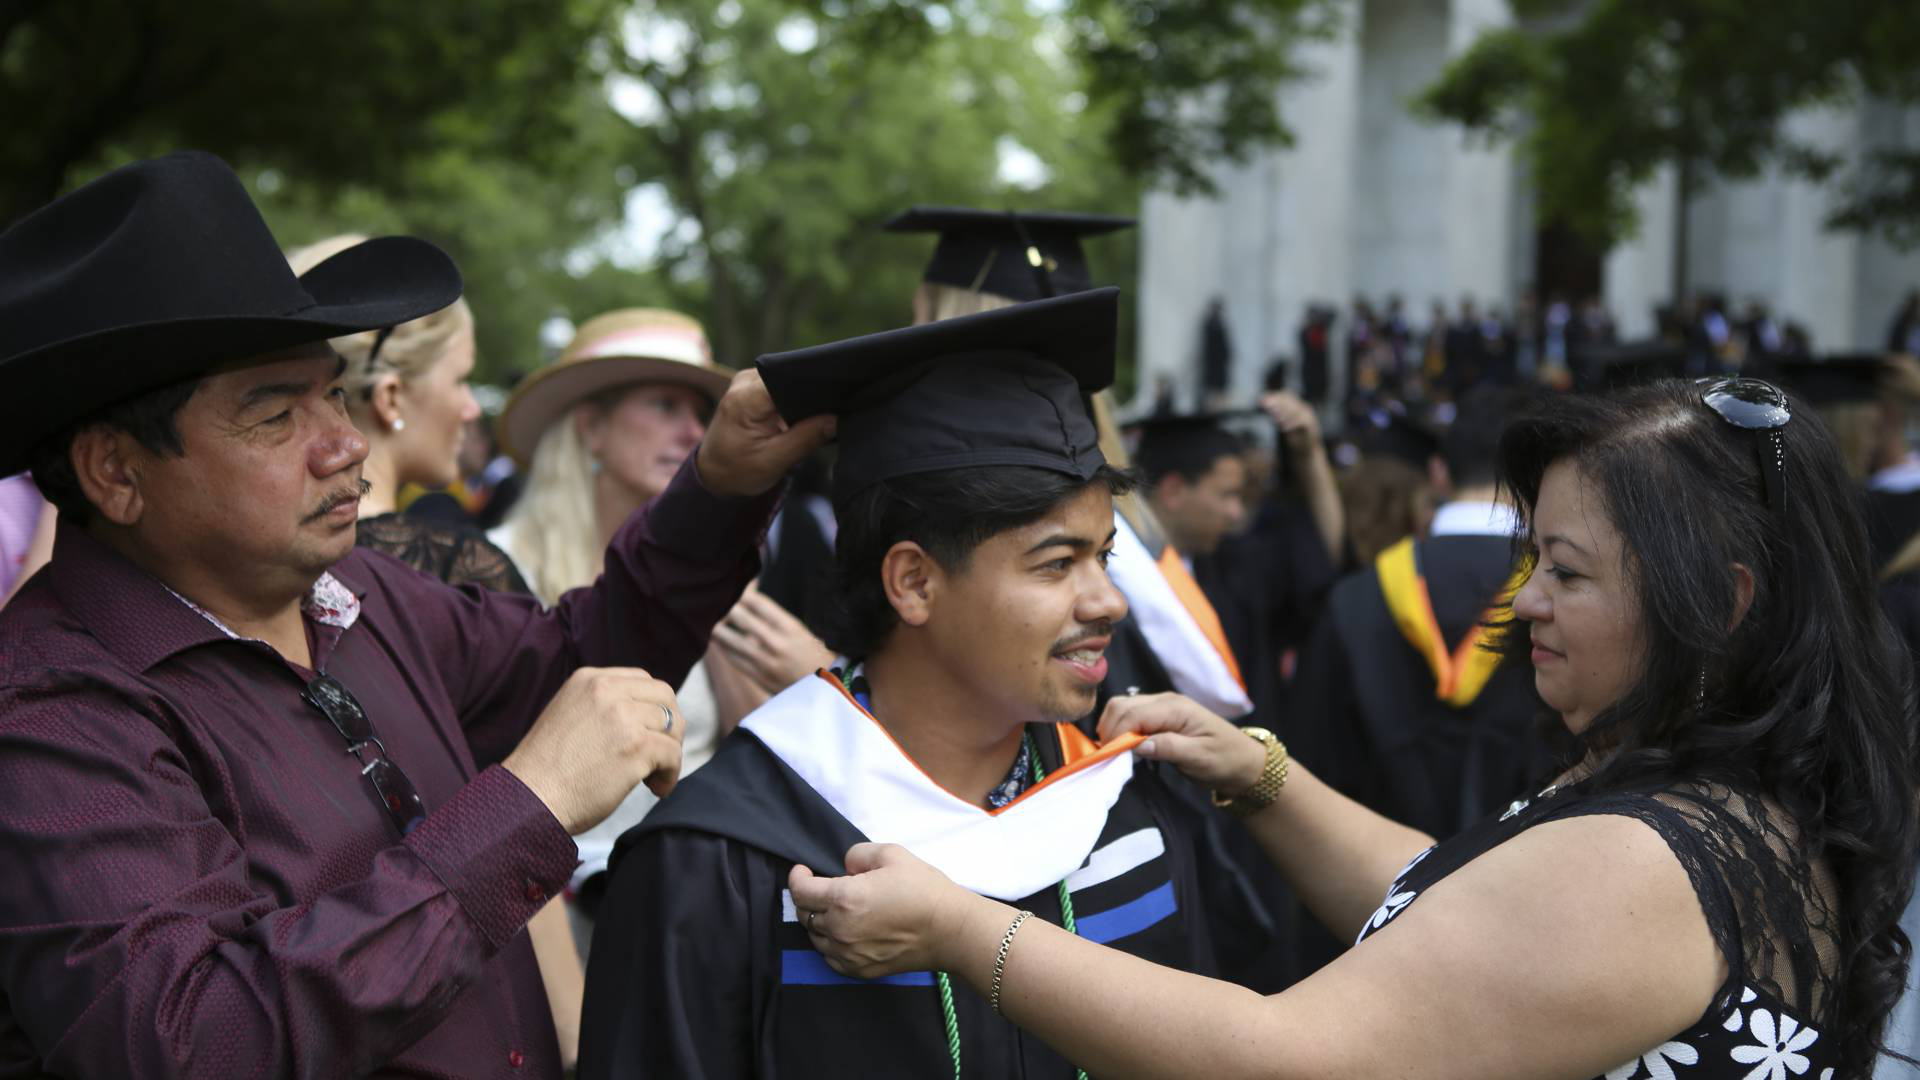 Fidelina Martinez (left) and Juan Leiva (right), natives of El Salvador who live in Trenton, New Jersey, help their son Gerson Leiva (center), the first in his family to go to college, get ready before the processional.